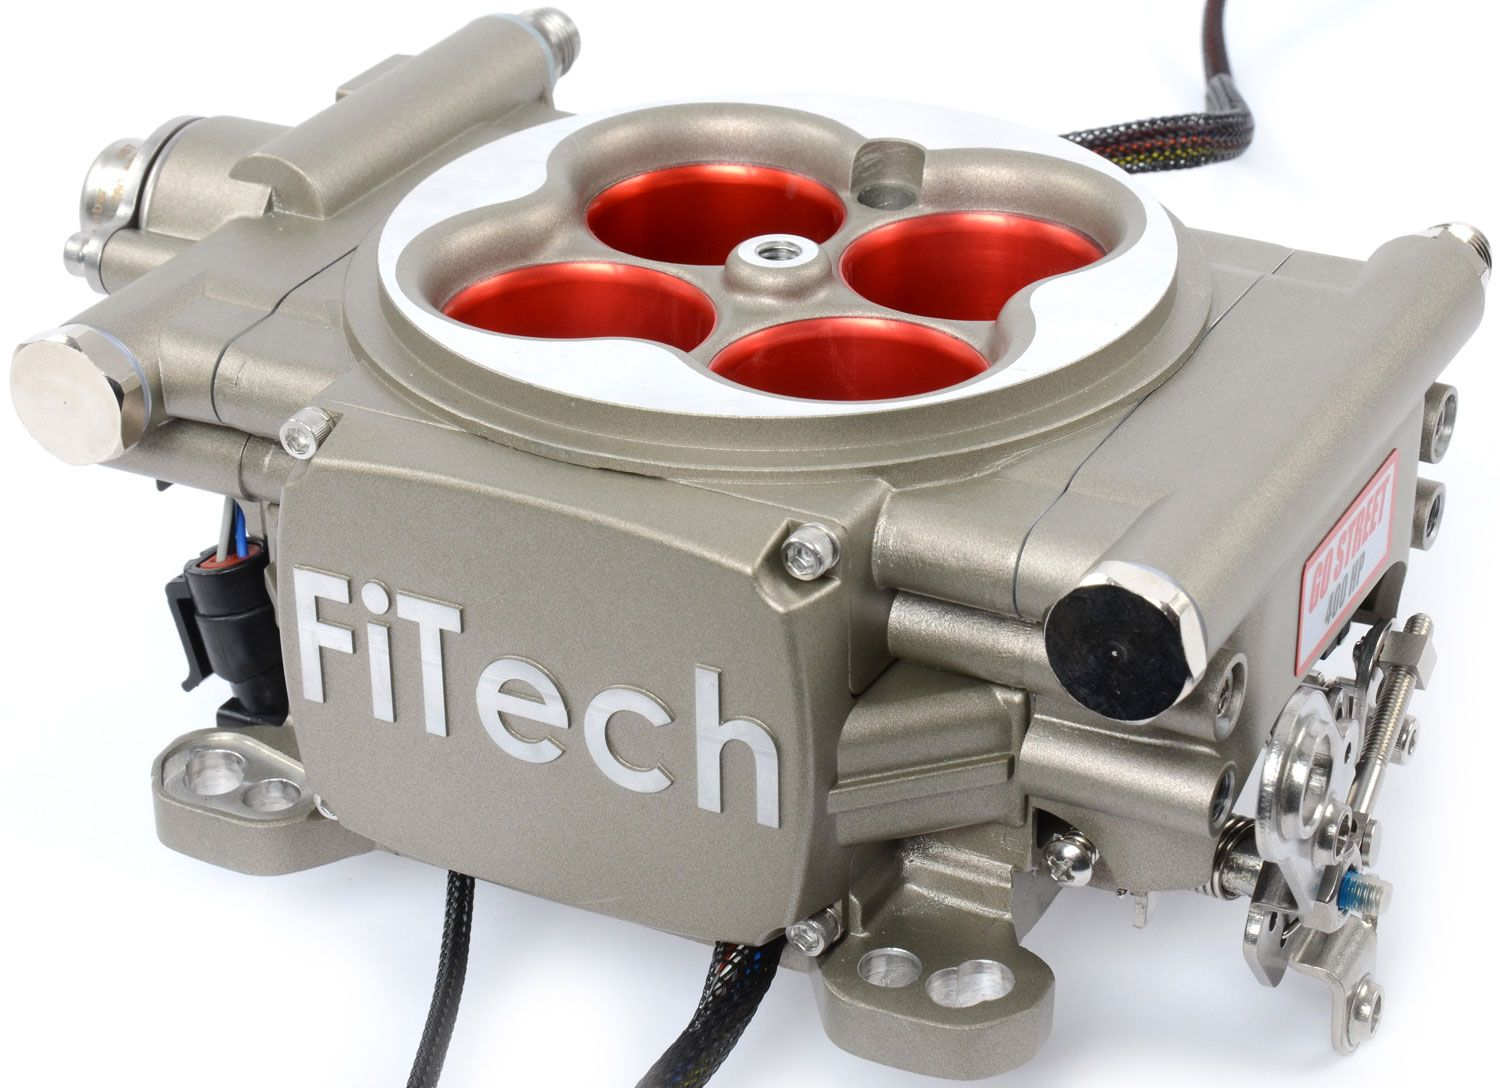 Looking for pics of FiTech fuel injection installed on